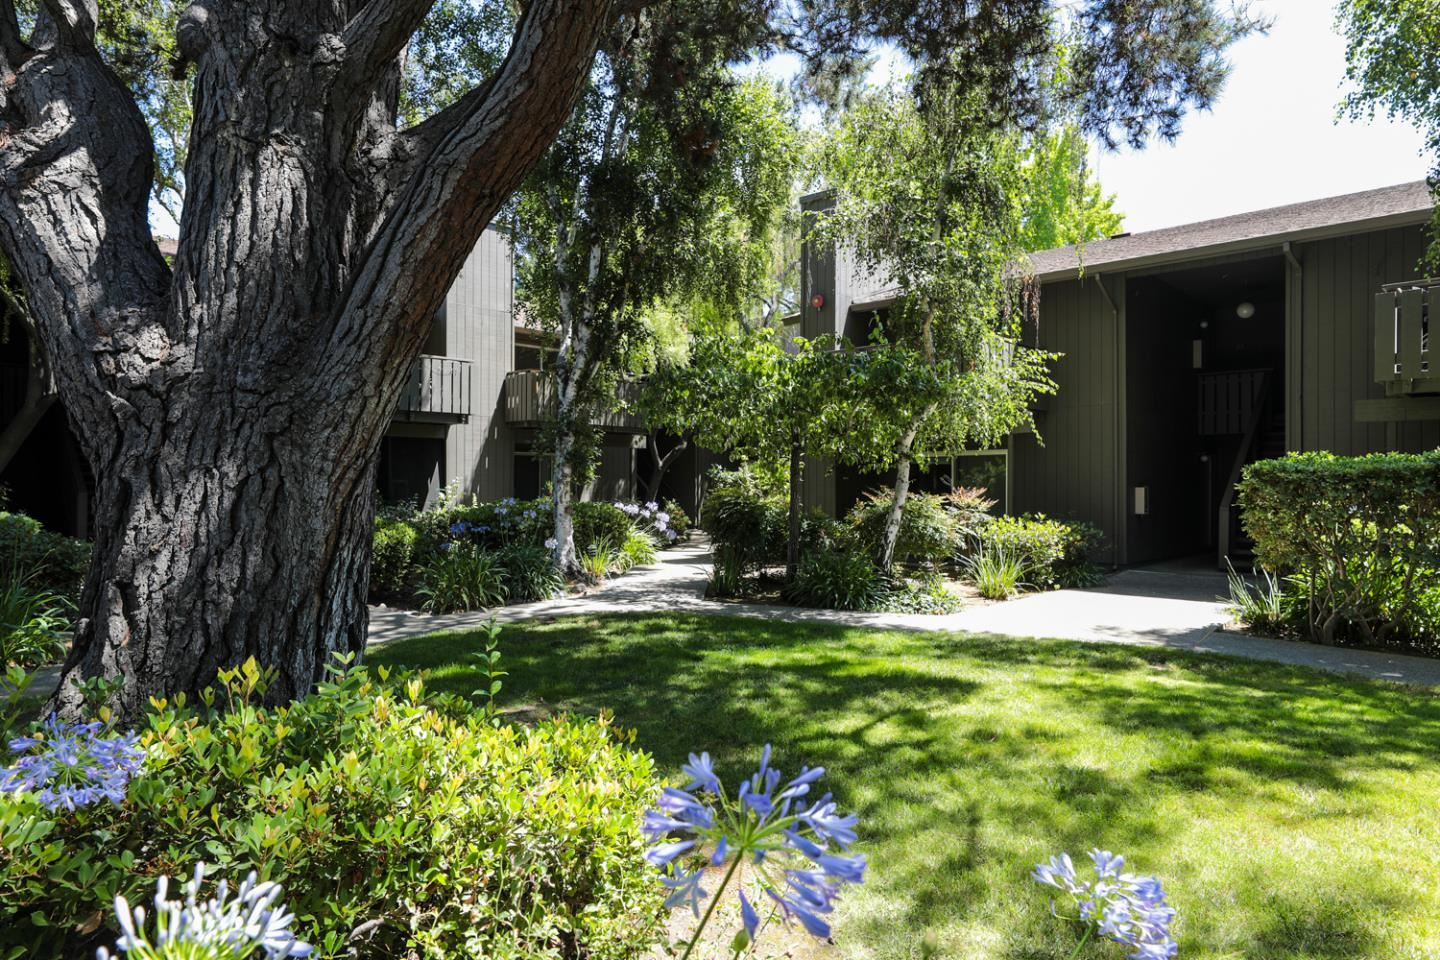 Photo for 50 East Middlefield Road #25, MOUNTAIN VIEW, CA 94043 (MLS # ML81854352)